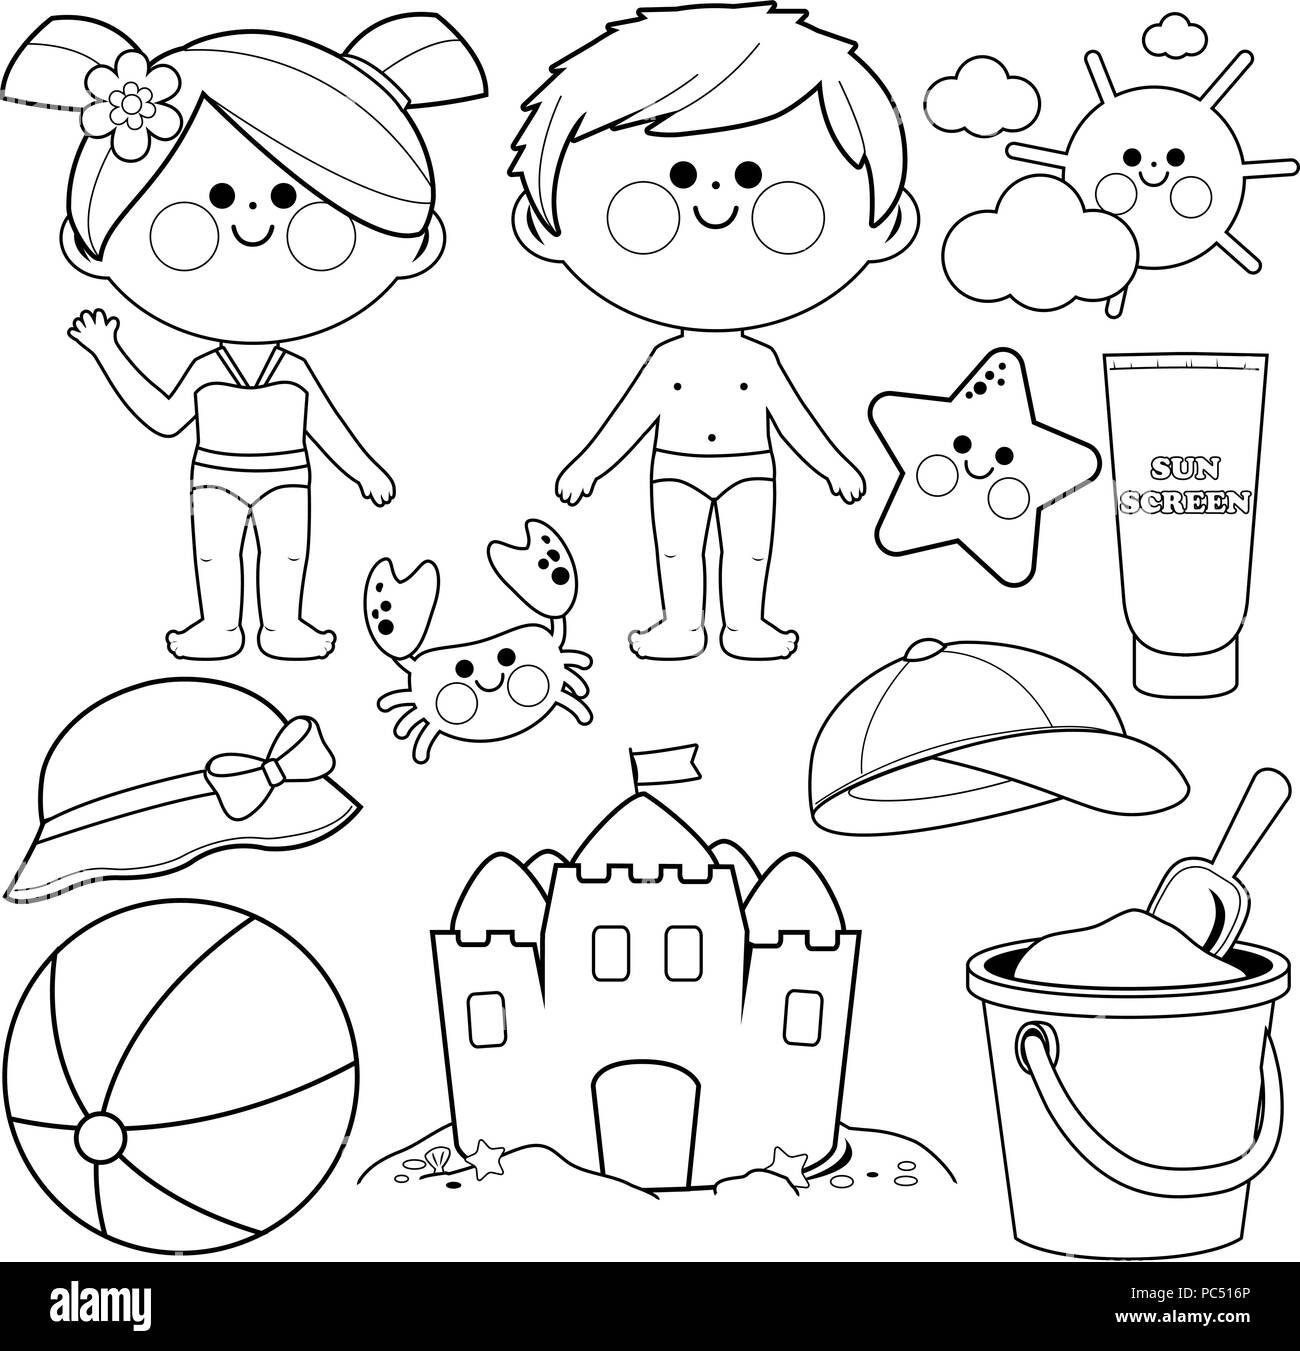 Children with swimsuits and beach summer vacation design elements black and white coloring book page